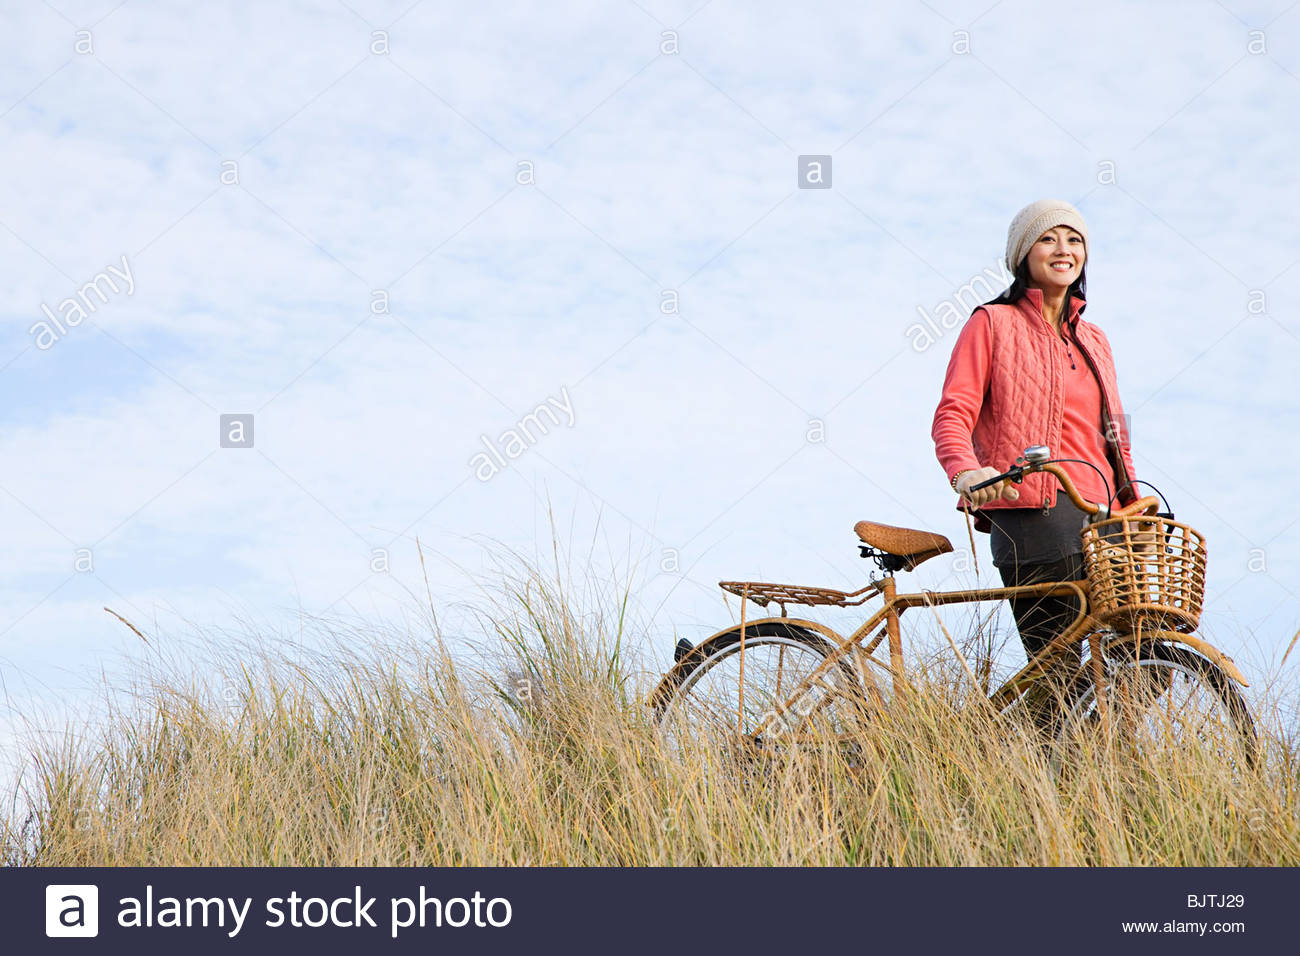 Woman with bicycle Photo Stock